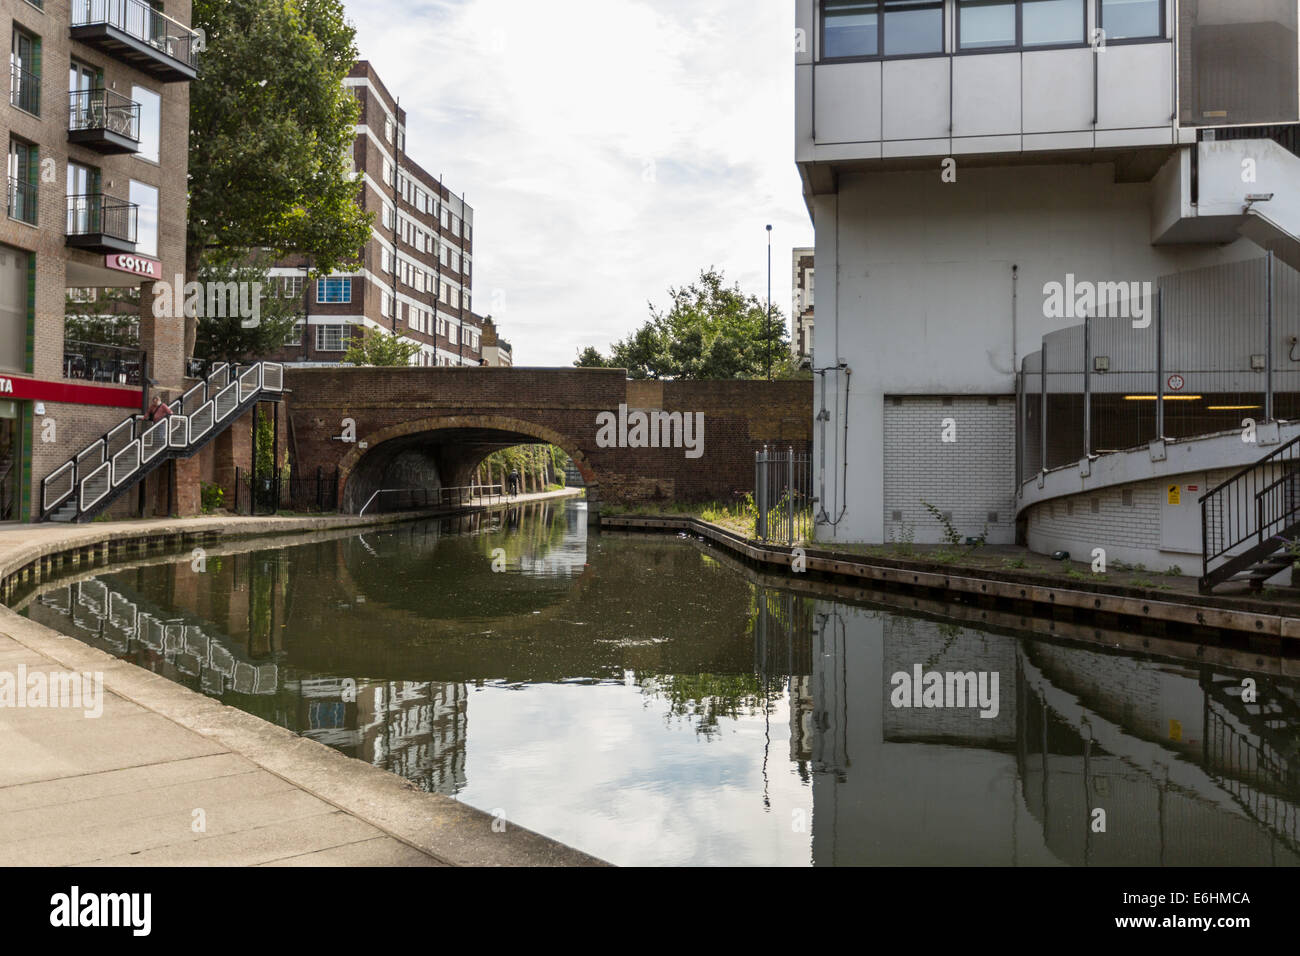 bend in the Regent Canal, London - Stock Image